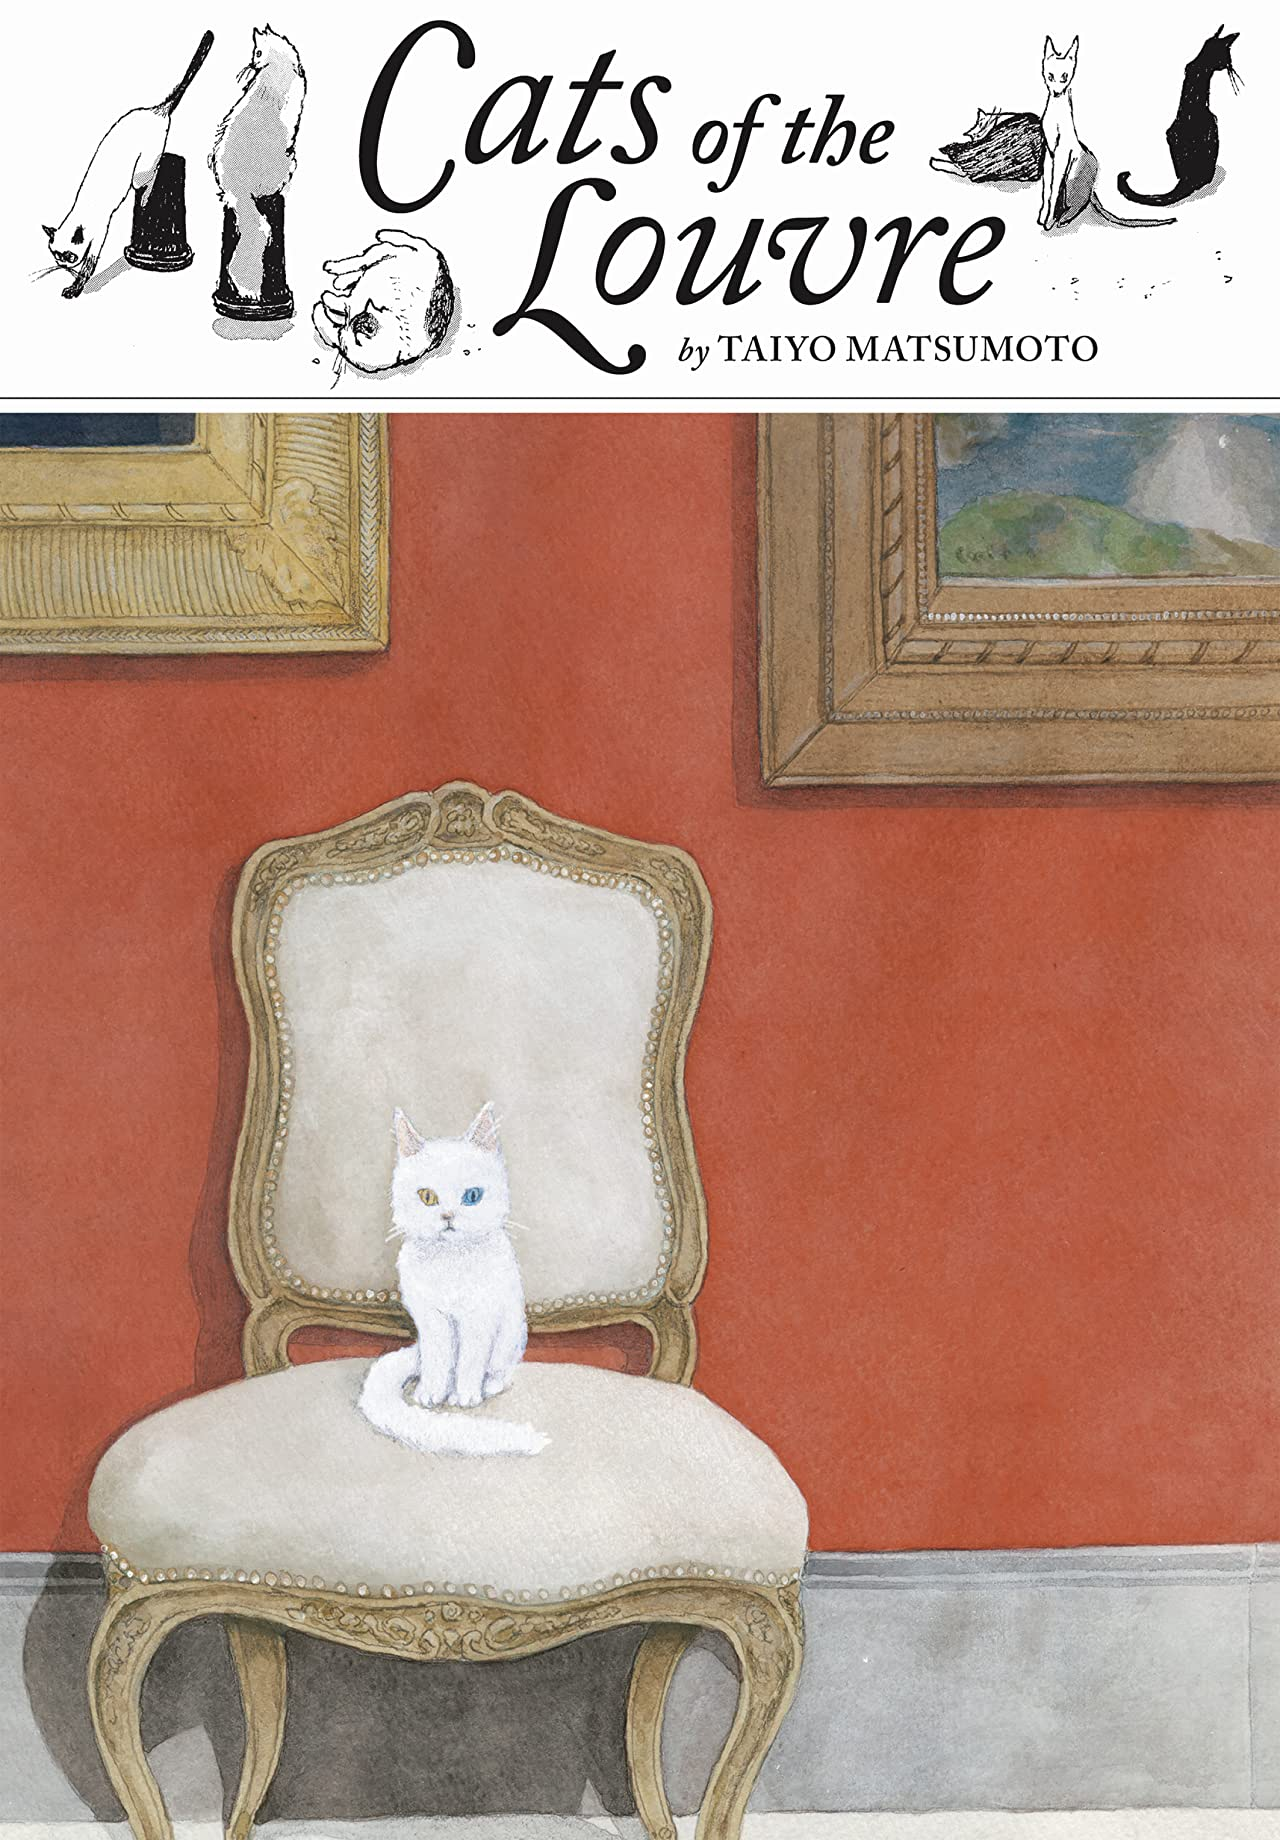 Cats of the Louvre Vol. 1